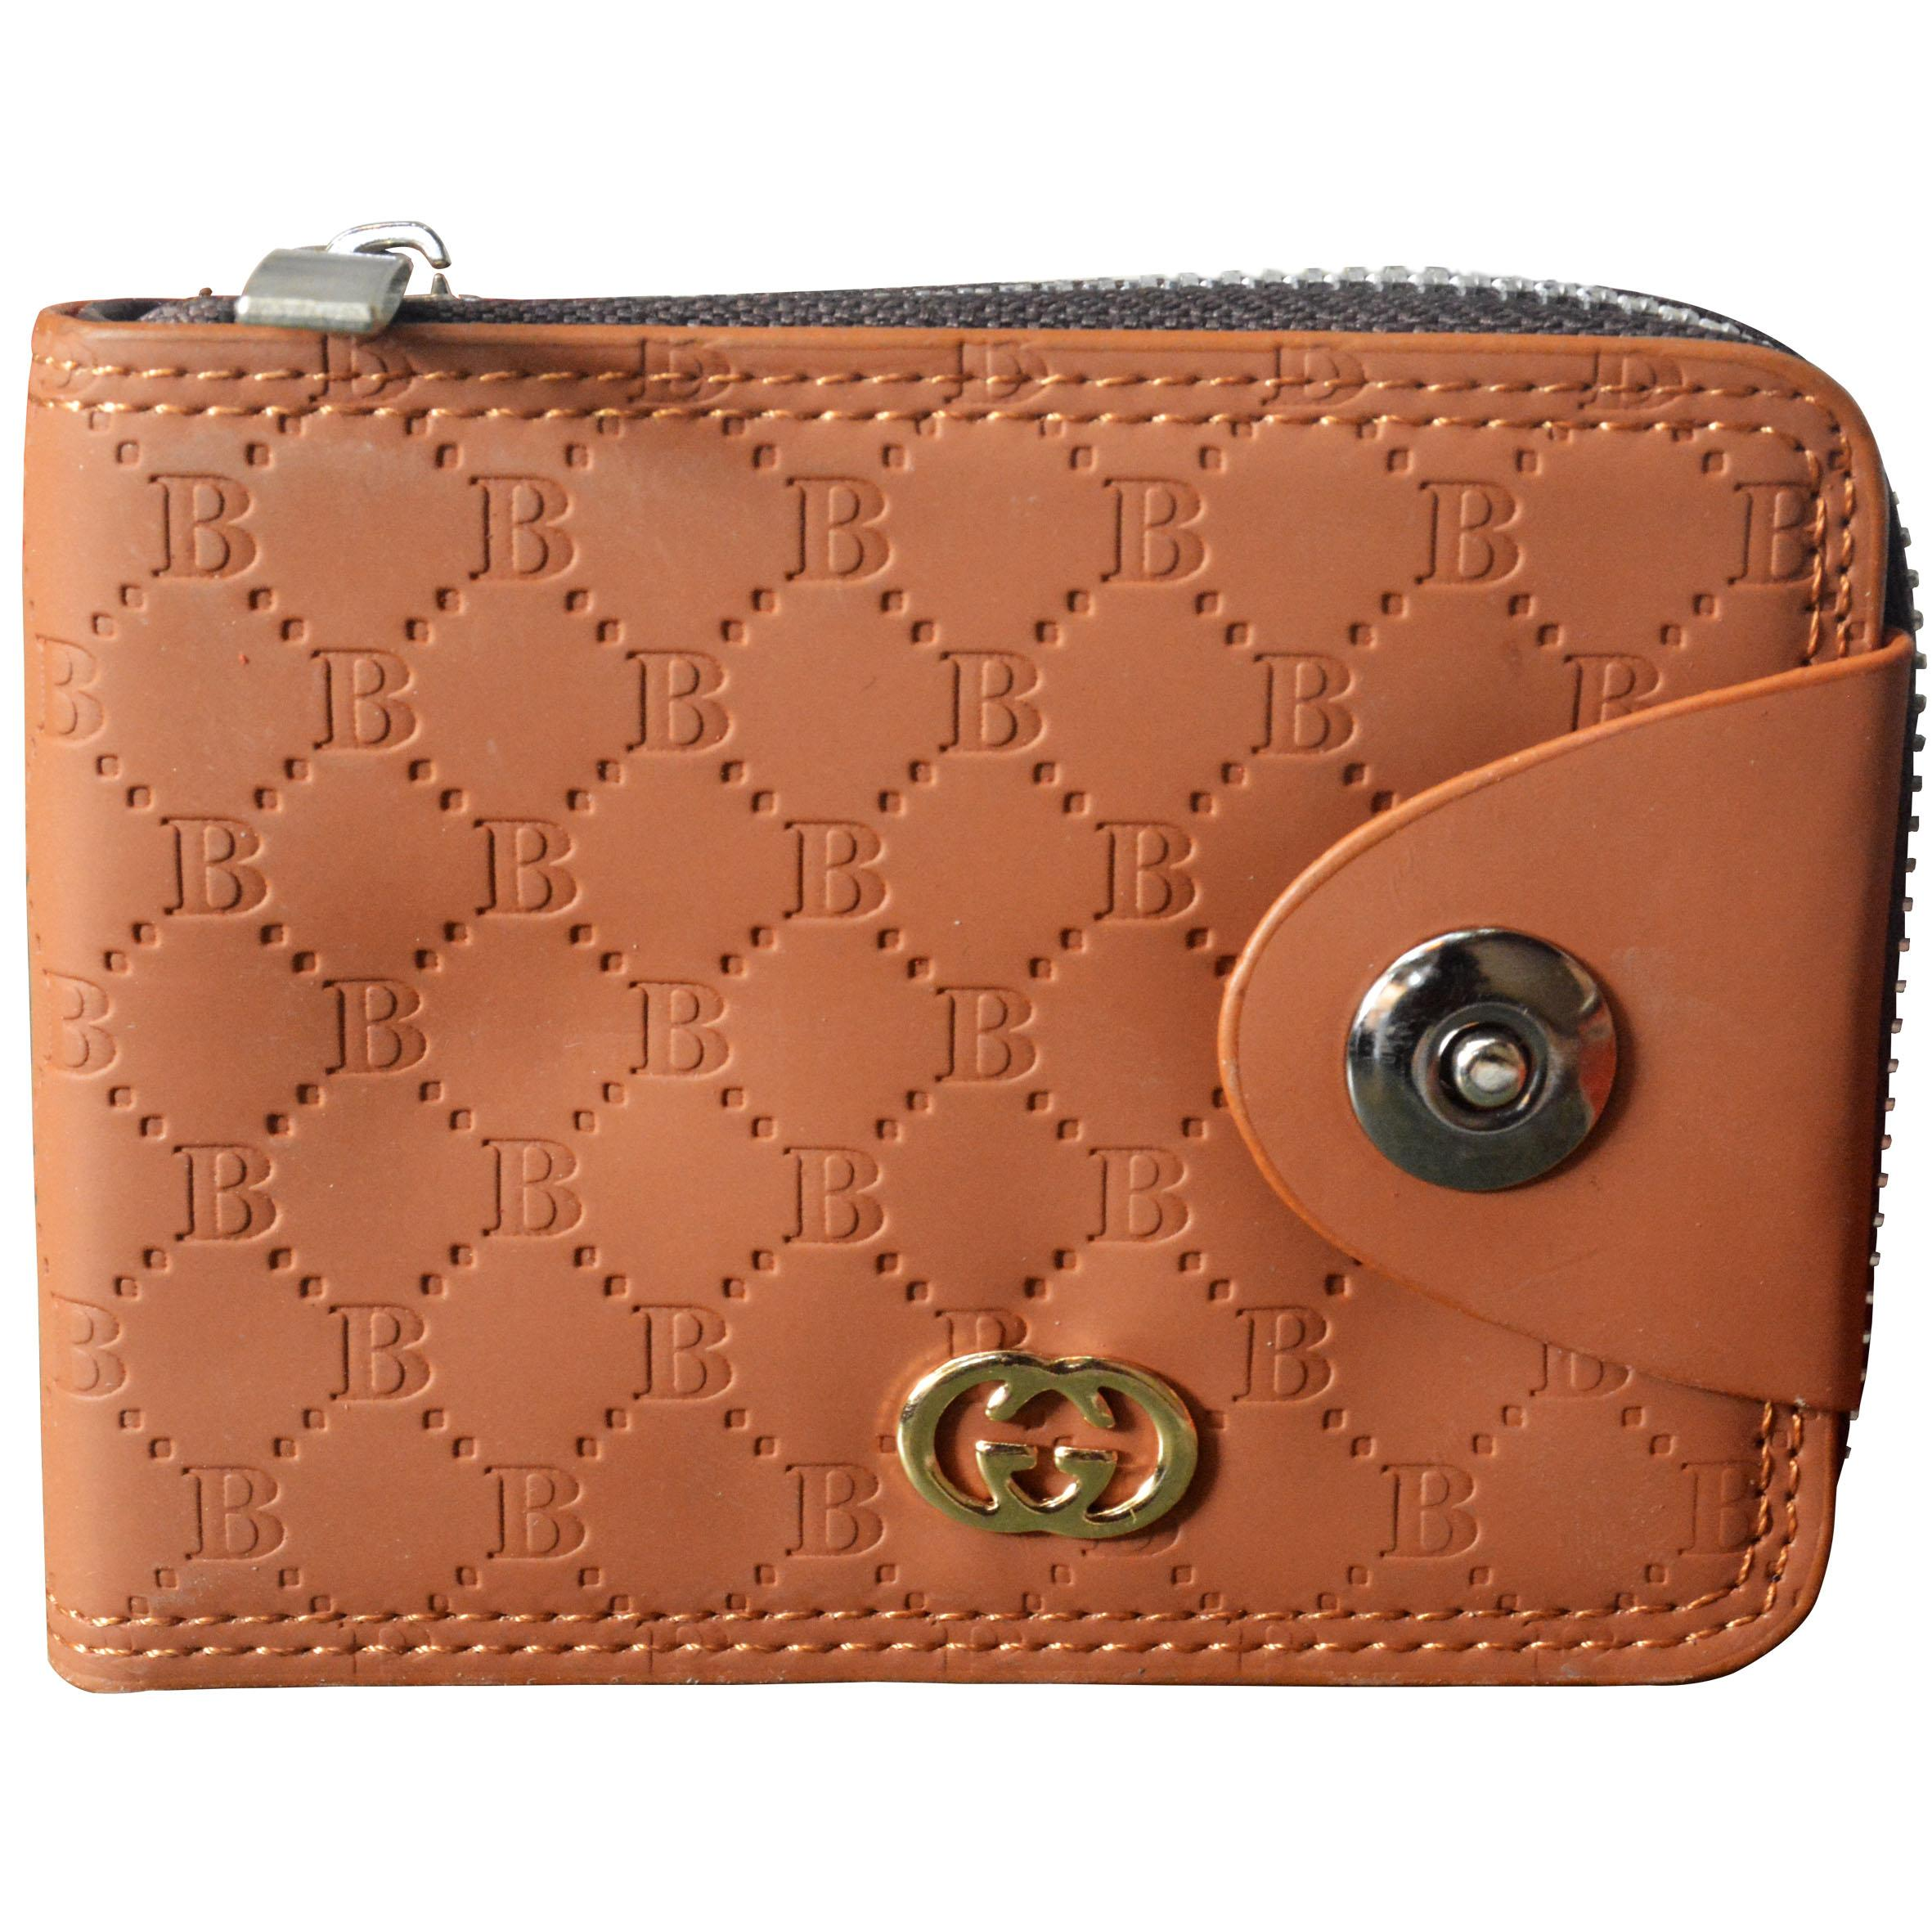 767a6475fd51 Buy Men s Wallets   Cardholders Online